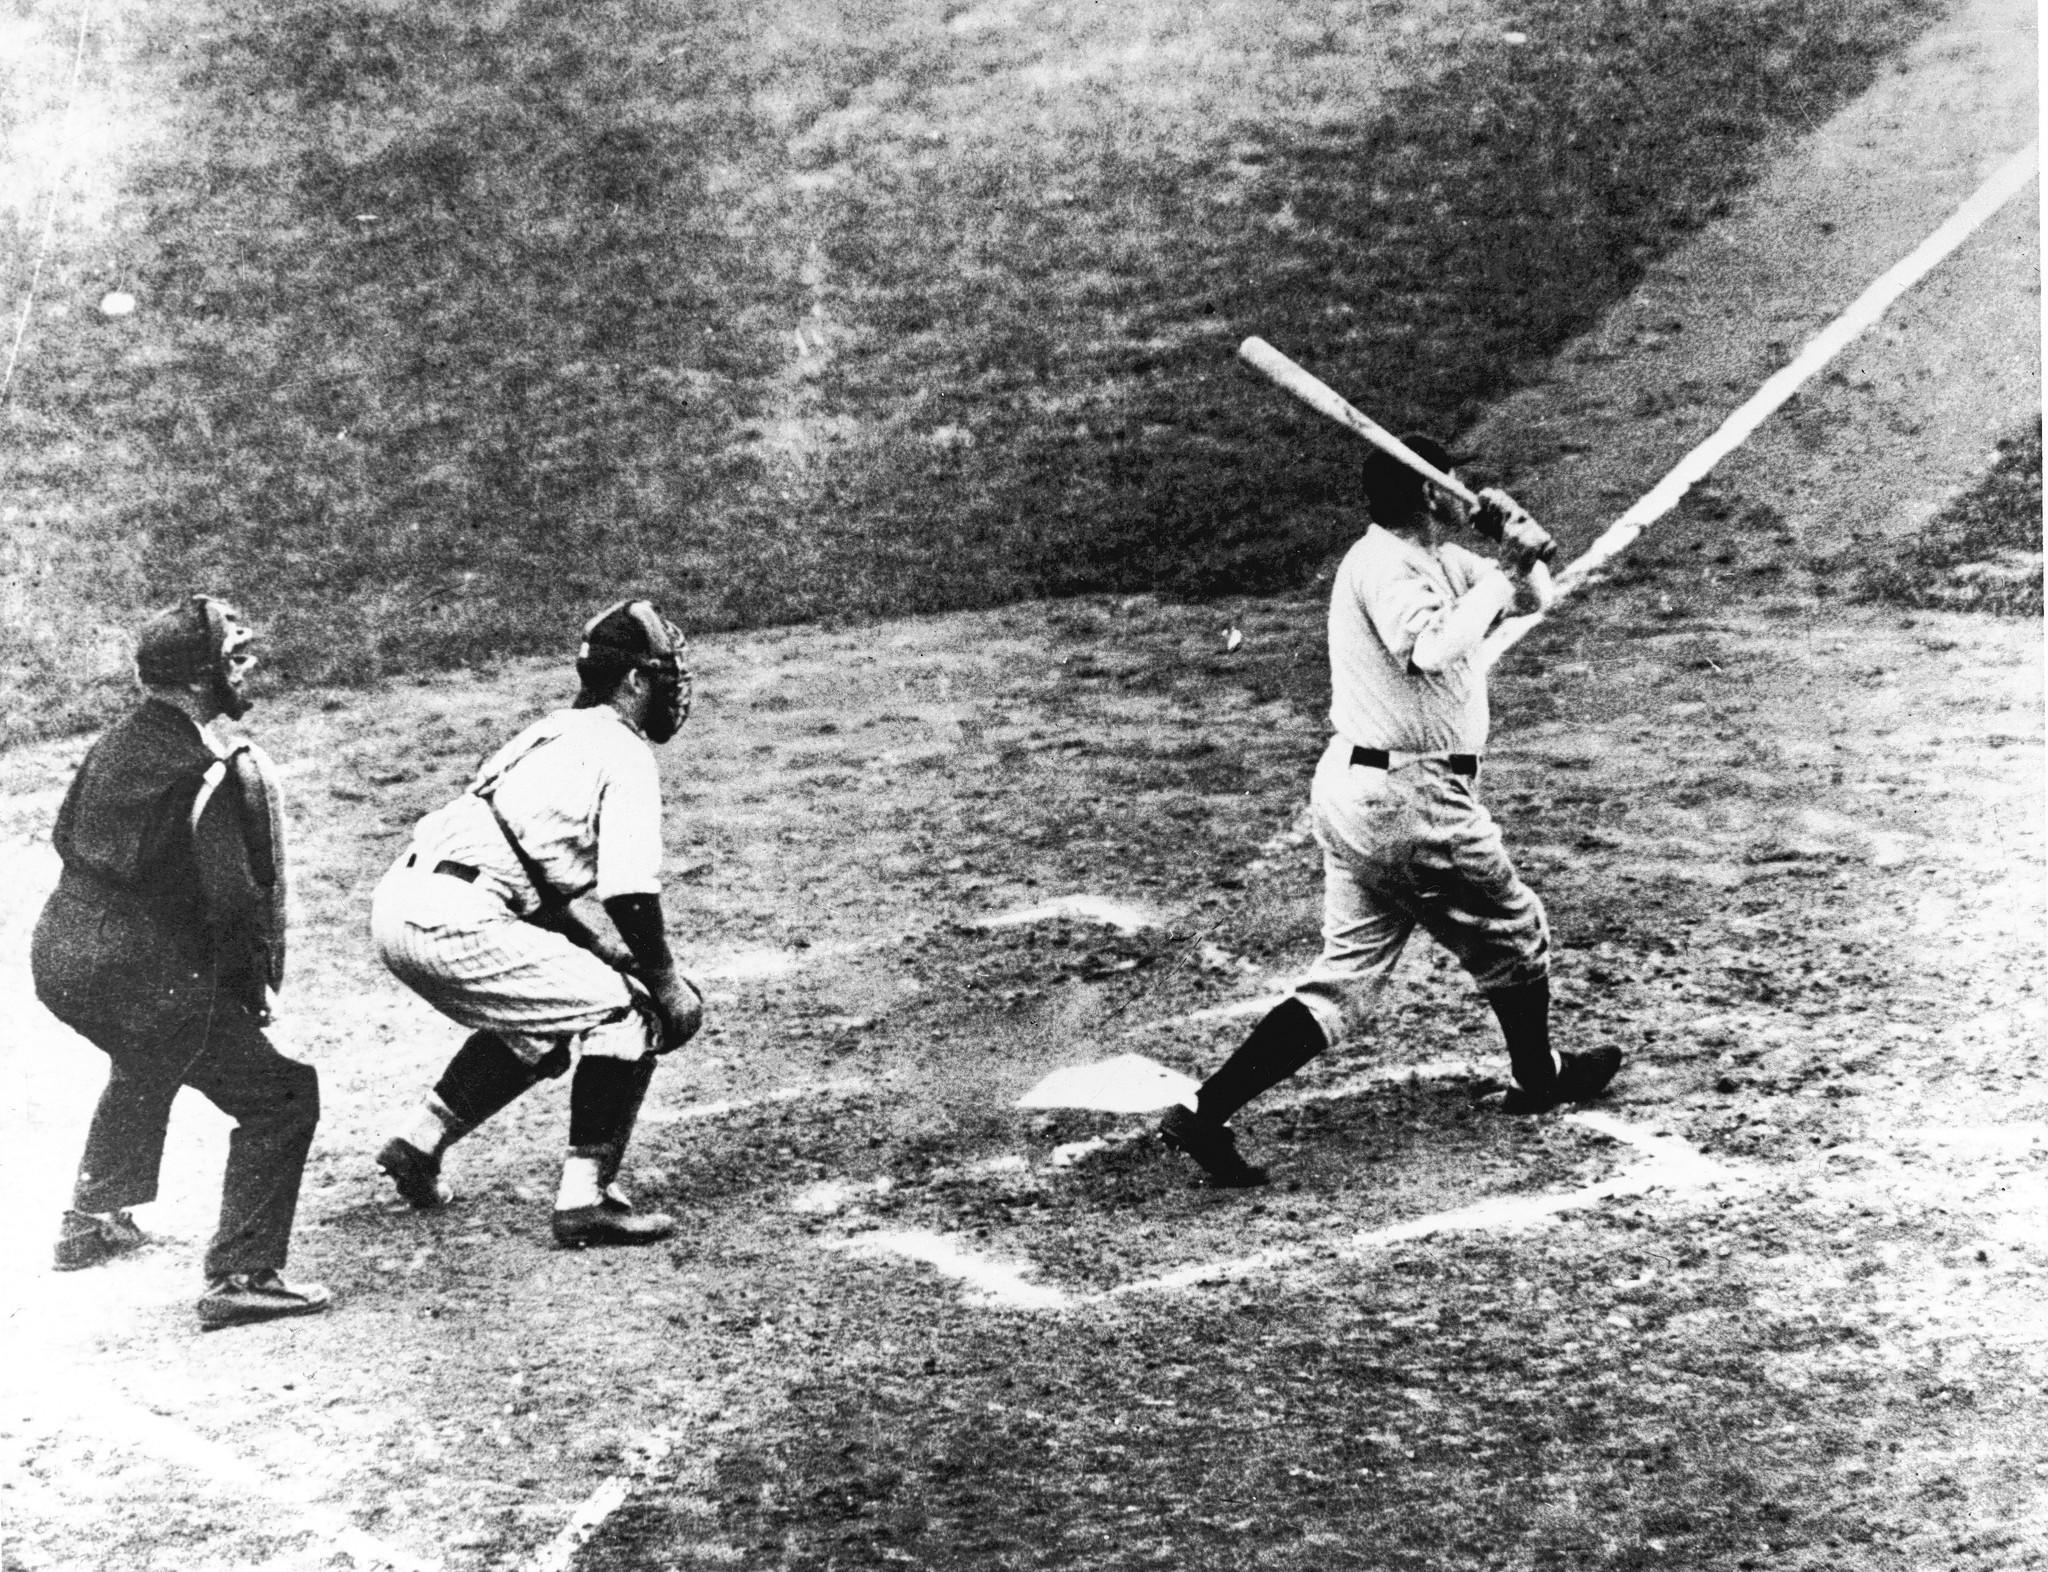 """Babe Ruth's Called Shot"" by Ed Sherman takes a look at one of baseball's most celebrated moments and asks whether Ruth really called his own shot."